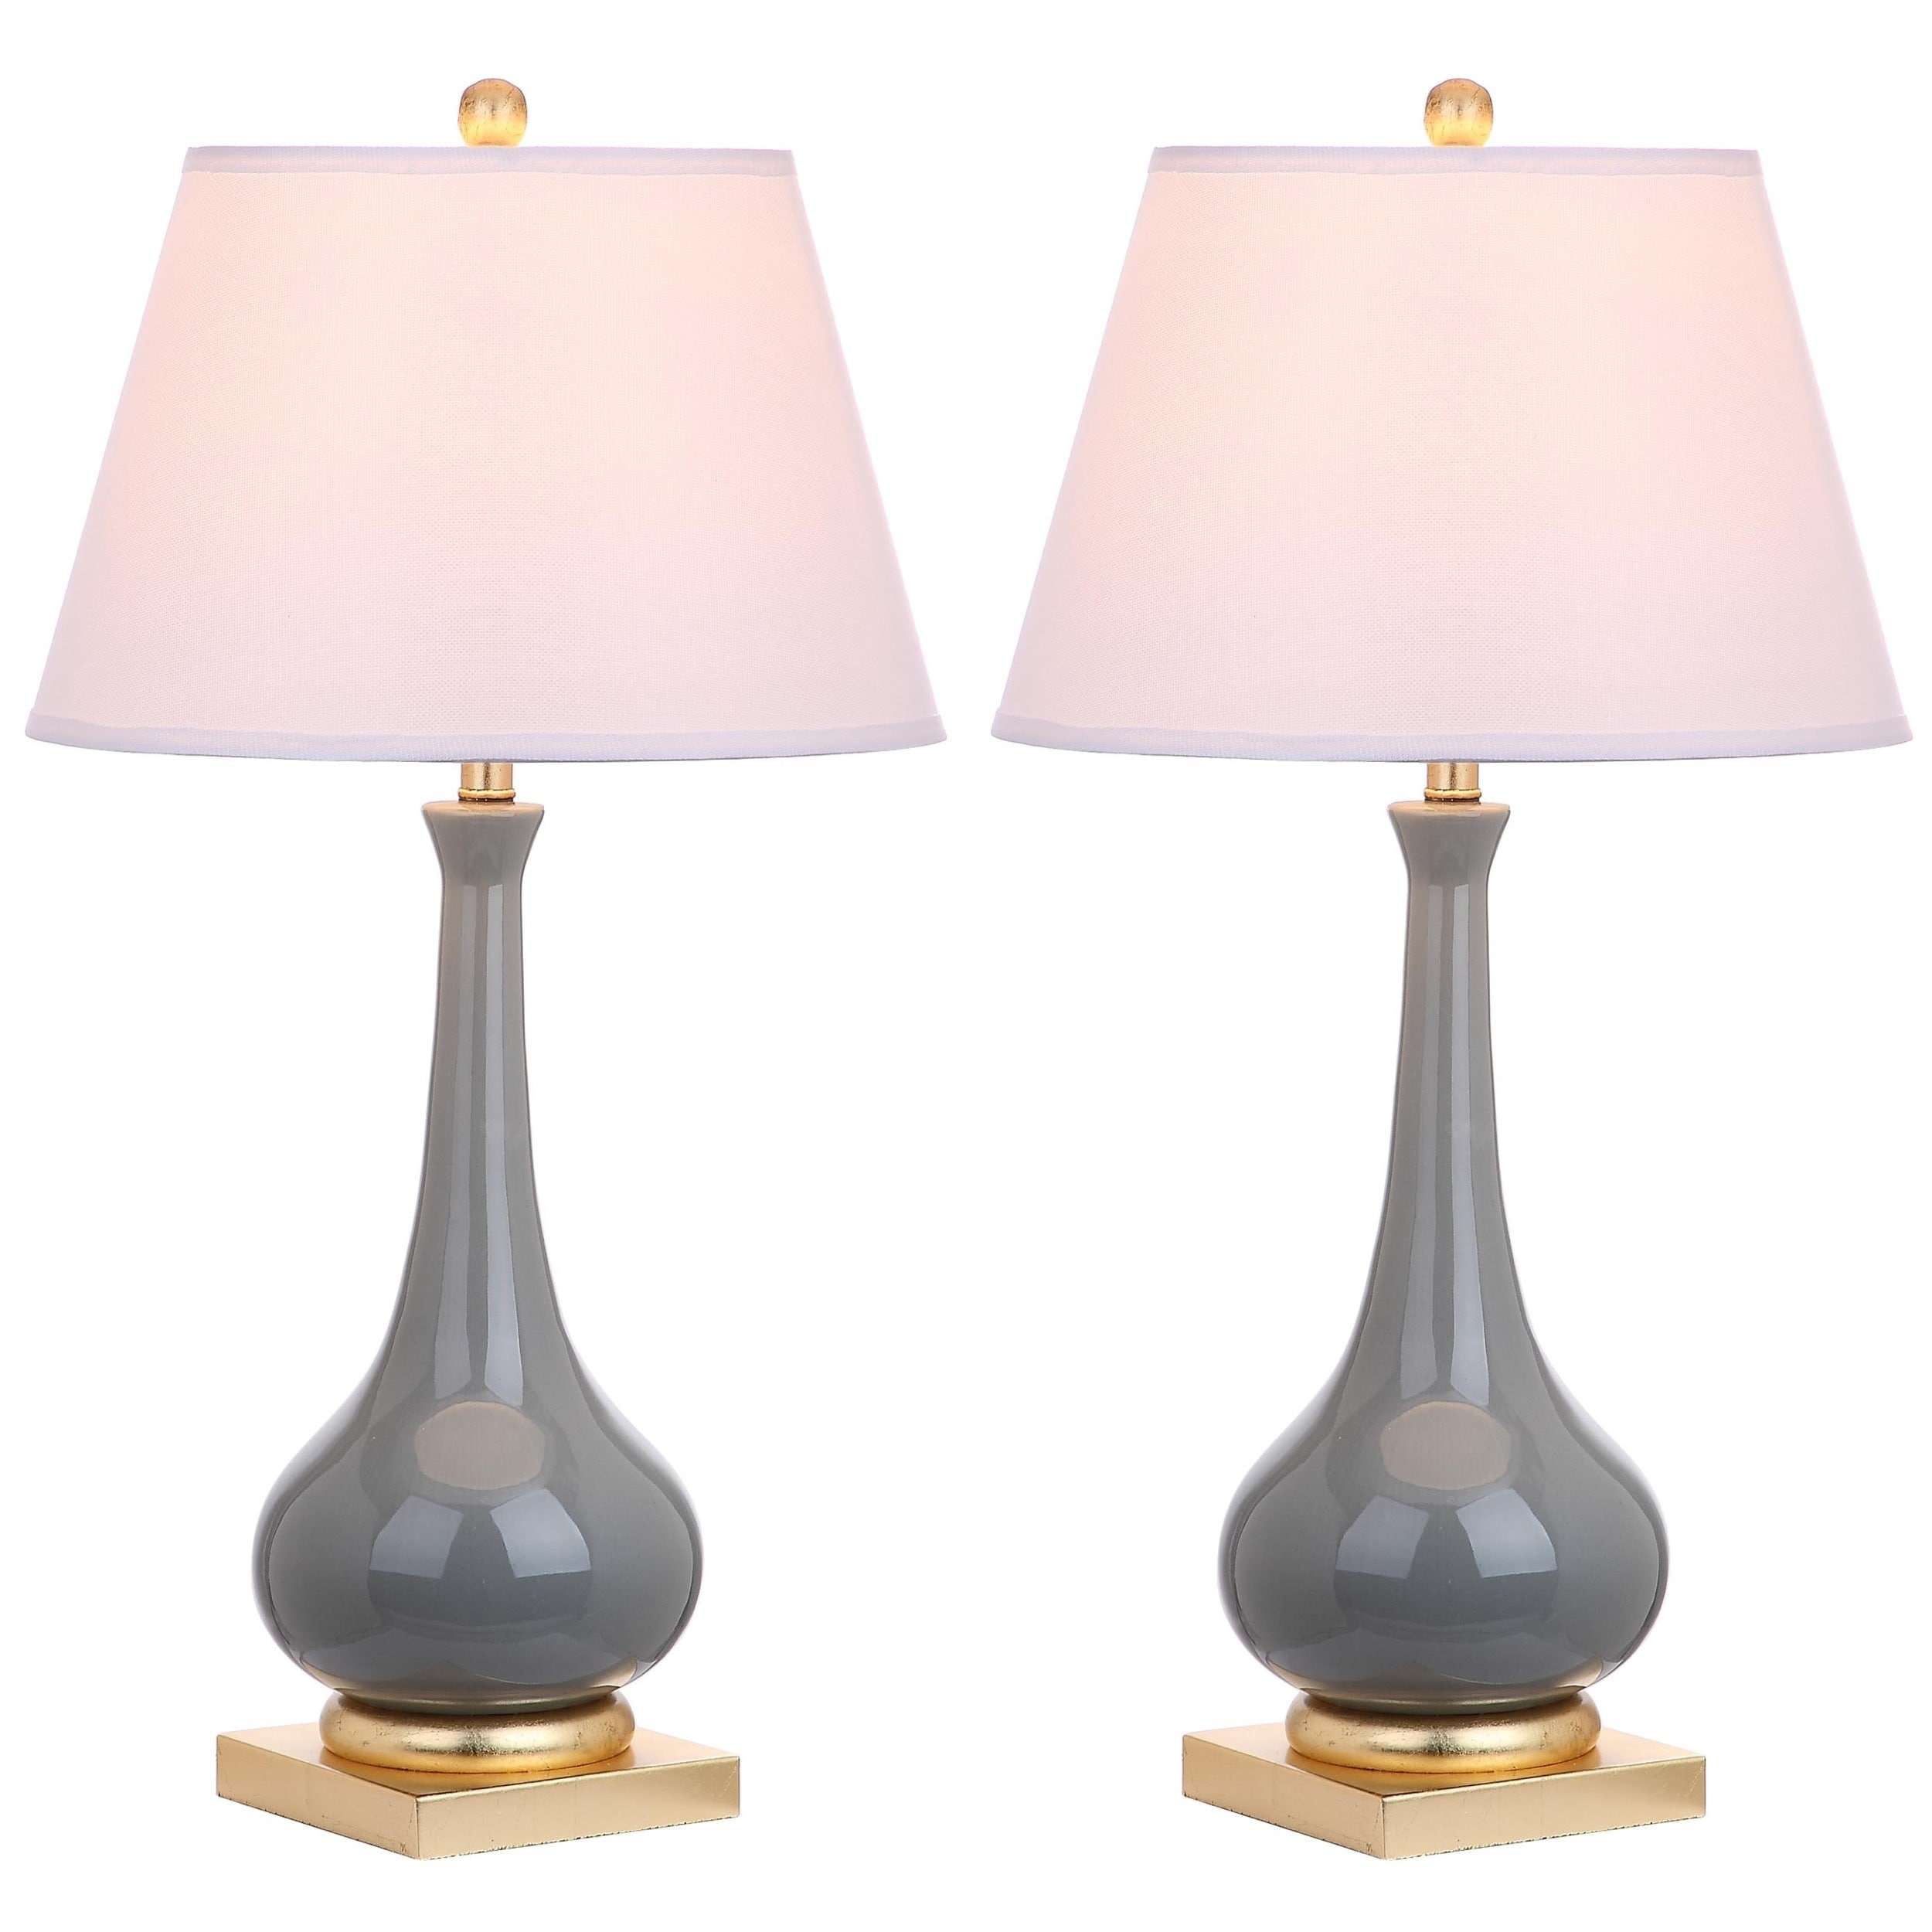 Safavieh lighting 325 inch jolie grey gold leaf table lamp set of safavieh lighting 325 inch jolie grey gold leaf table lamp set of 2 aloadofball Image collections